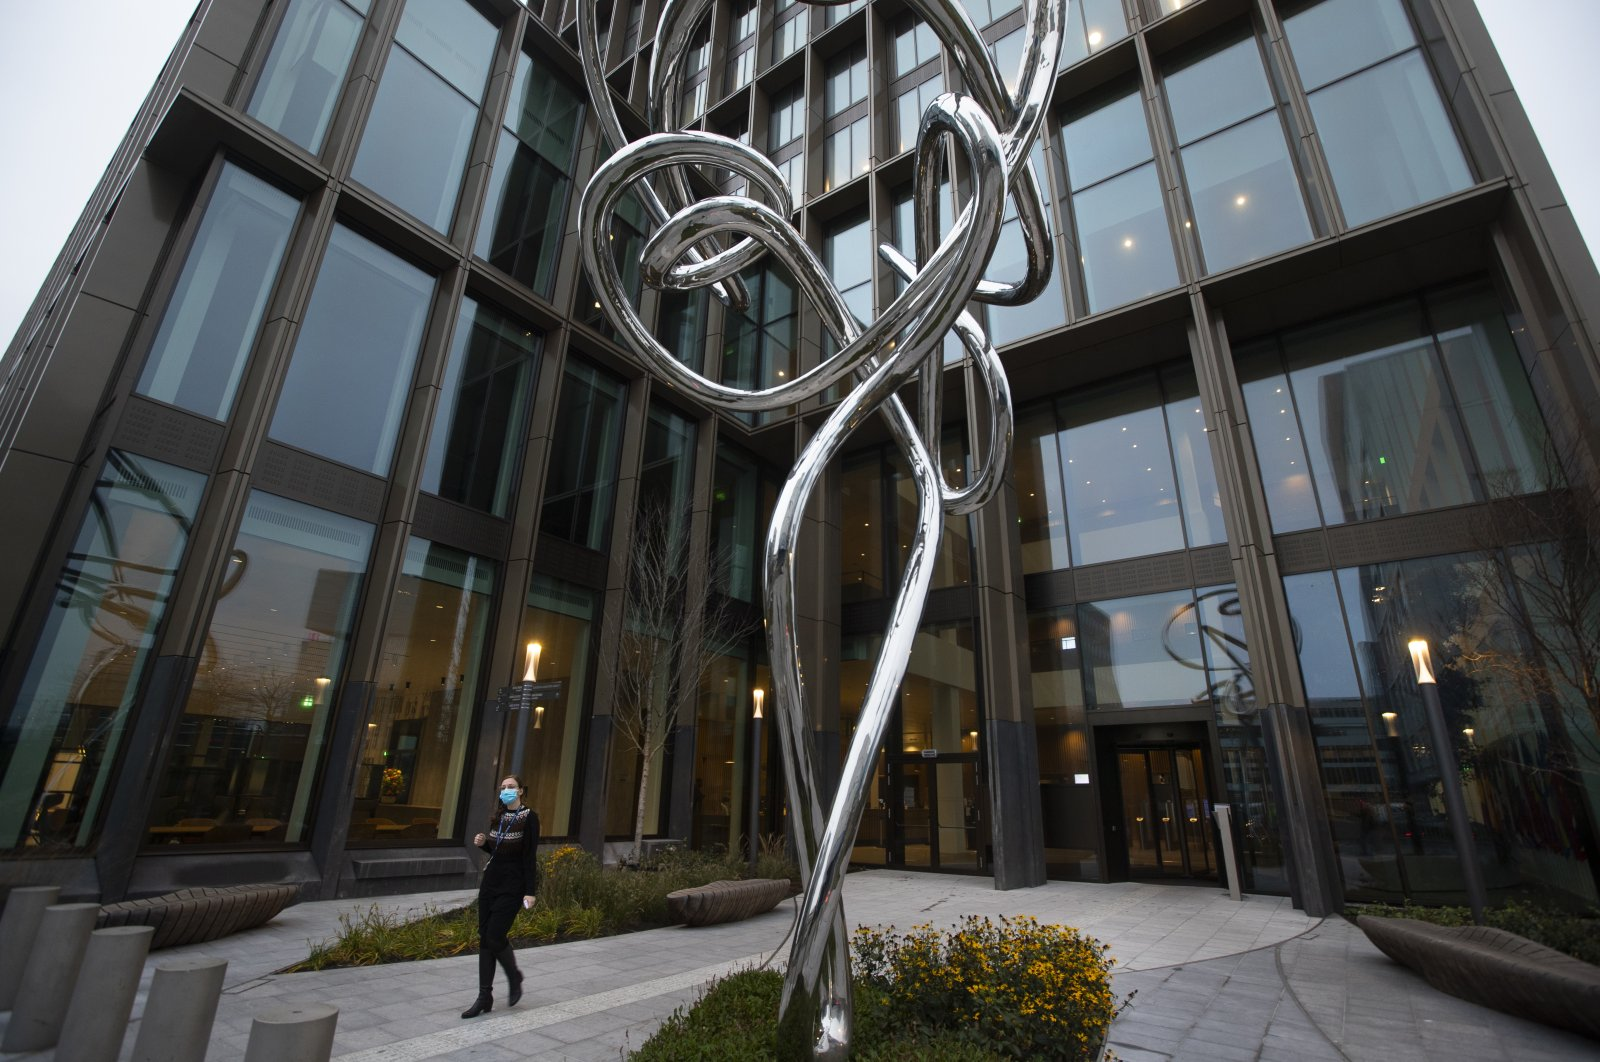 A view of the European Medicines Agency (EMA) building, where the human medicines committee held an exceptional, fully virtual meeting to conclude the evaluation of the Pfizer-BioNTech COVID-19 vaccine, in Amsterdam, the Netherlands, Dec. 21, 2020. (AP Photo)